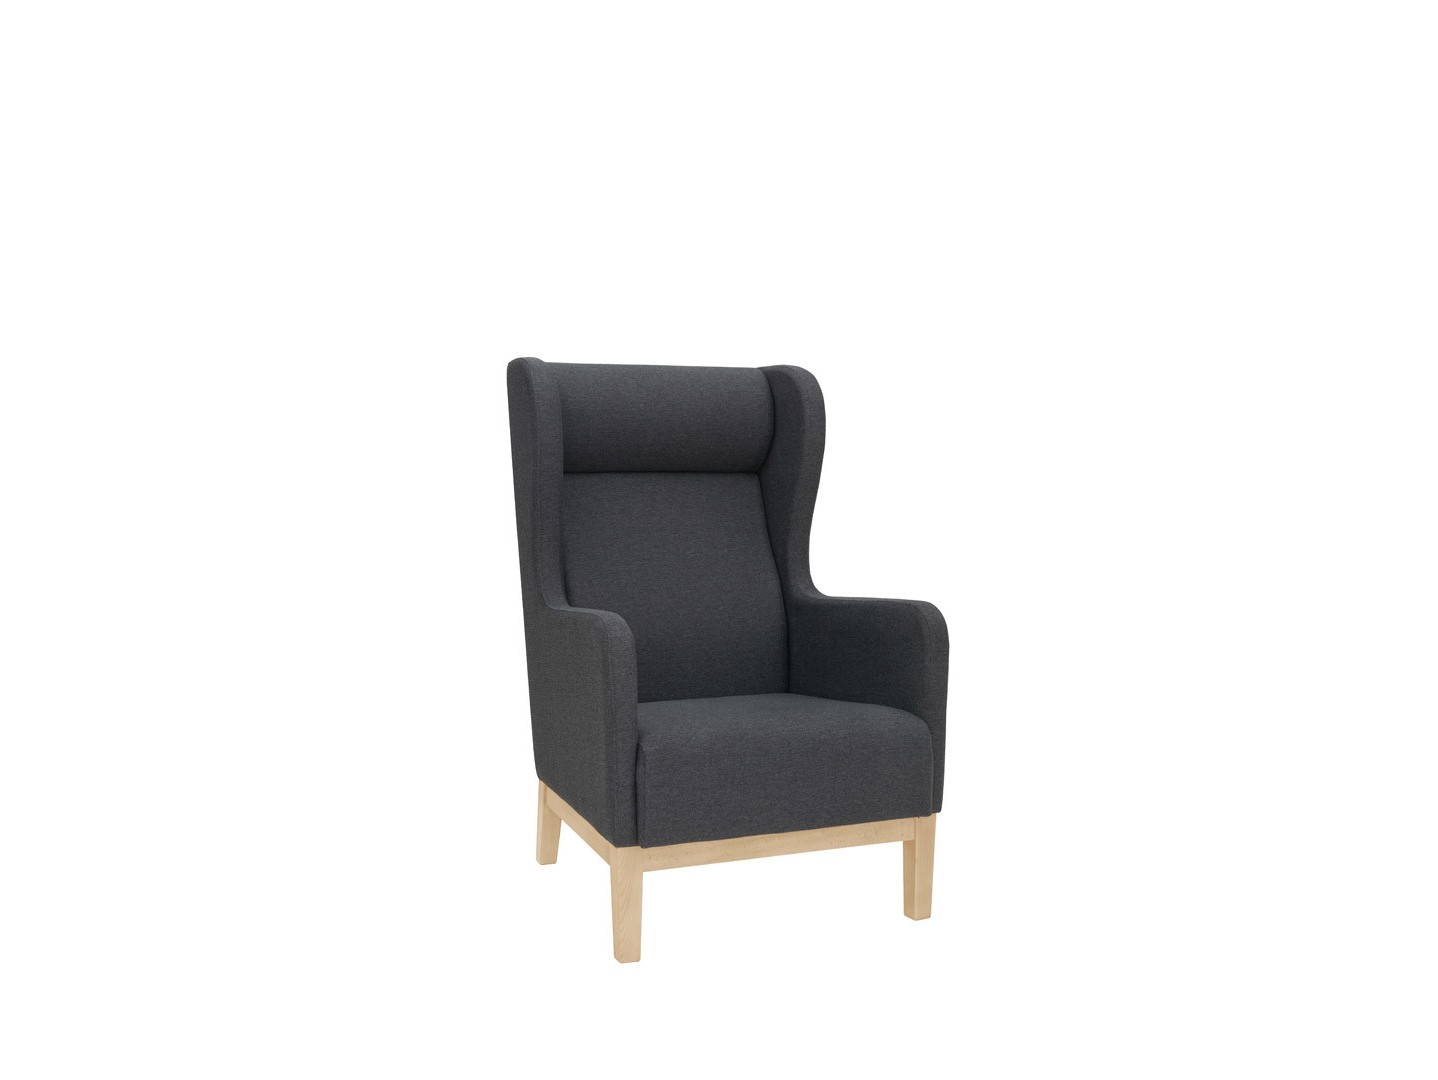 Furniture Amsterdam Armchair Amsterdam 71cm X 108cm X 79cm Furniture Store Brw